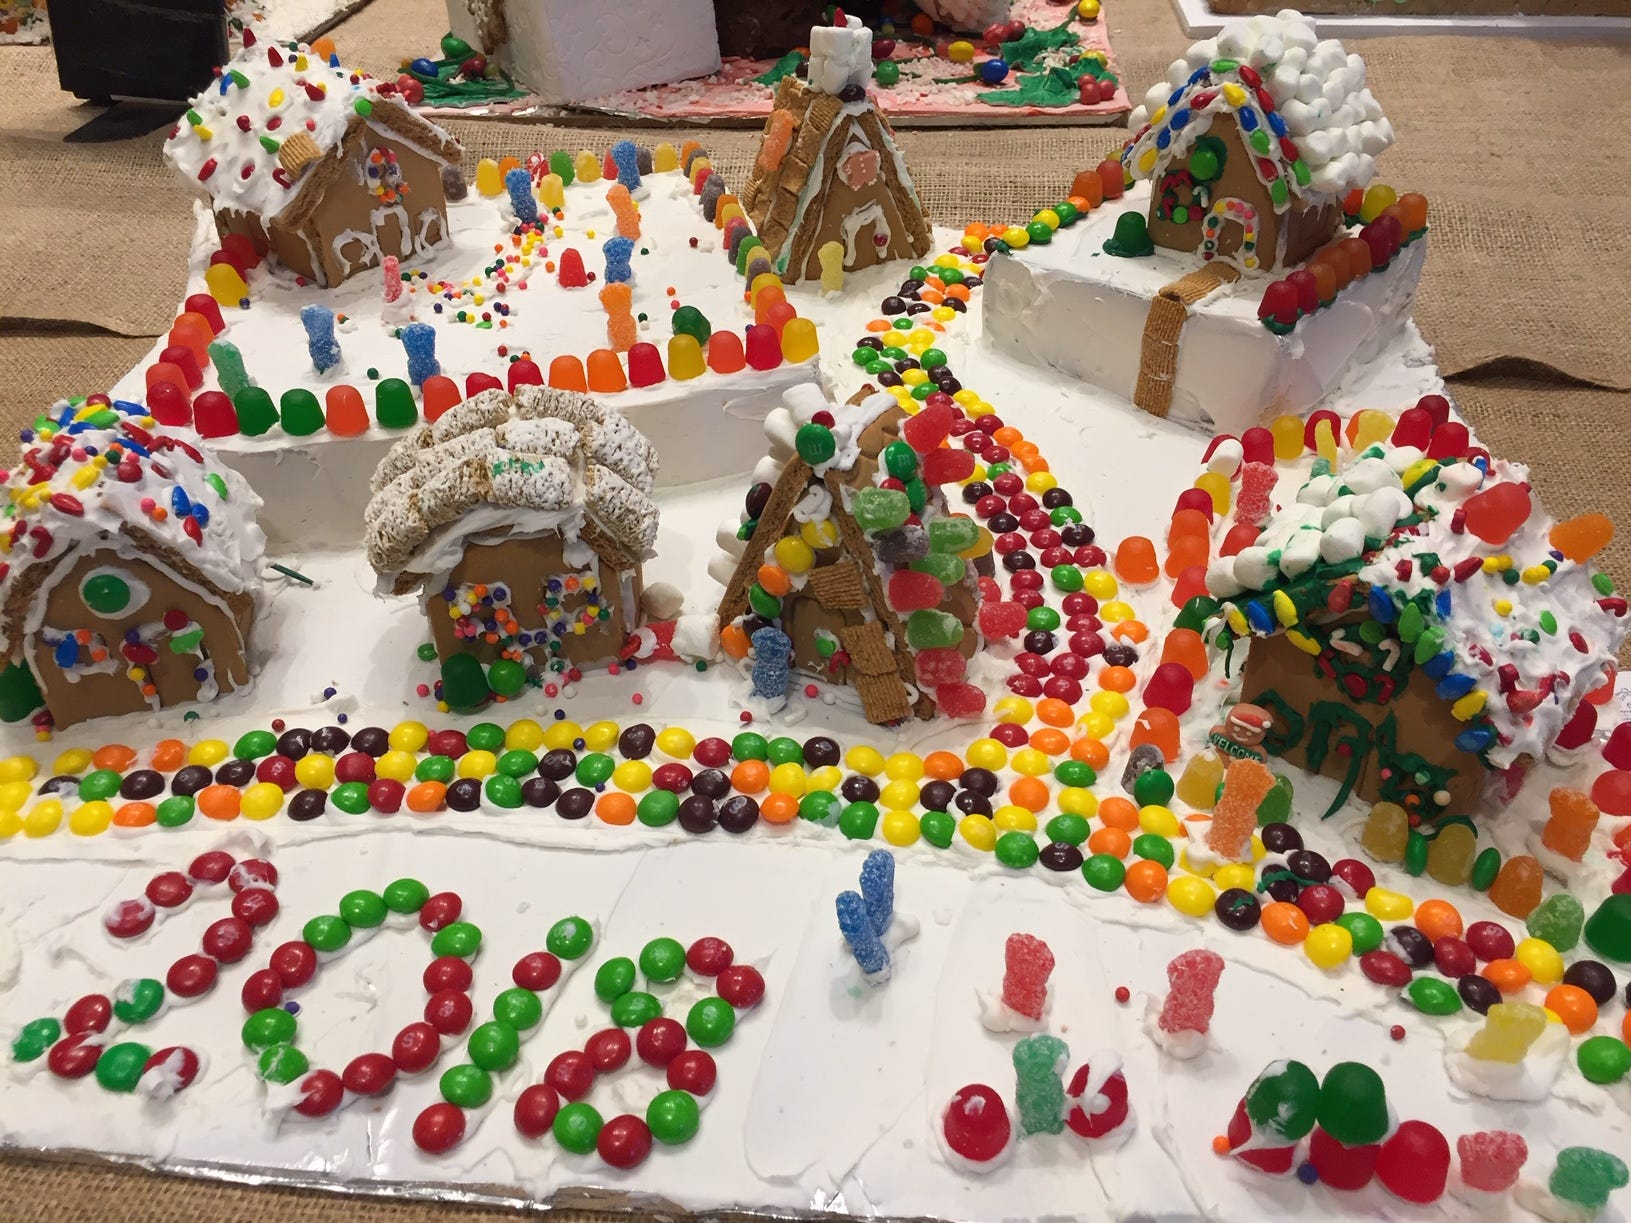 """Gi Family category.ngerland"" by the Yorgey Family of Morristown at the 2018 Gingerbread Wonderland at the Frelinghuysen Arboretum."